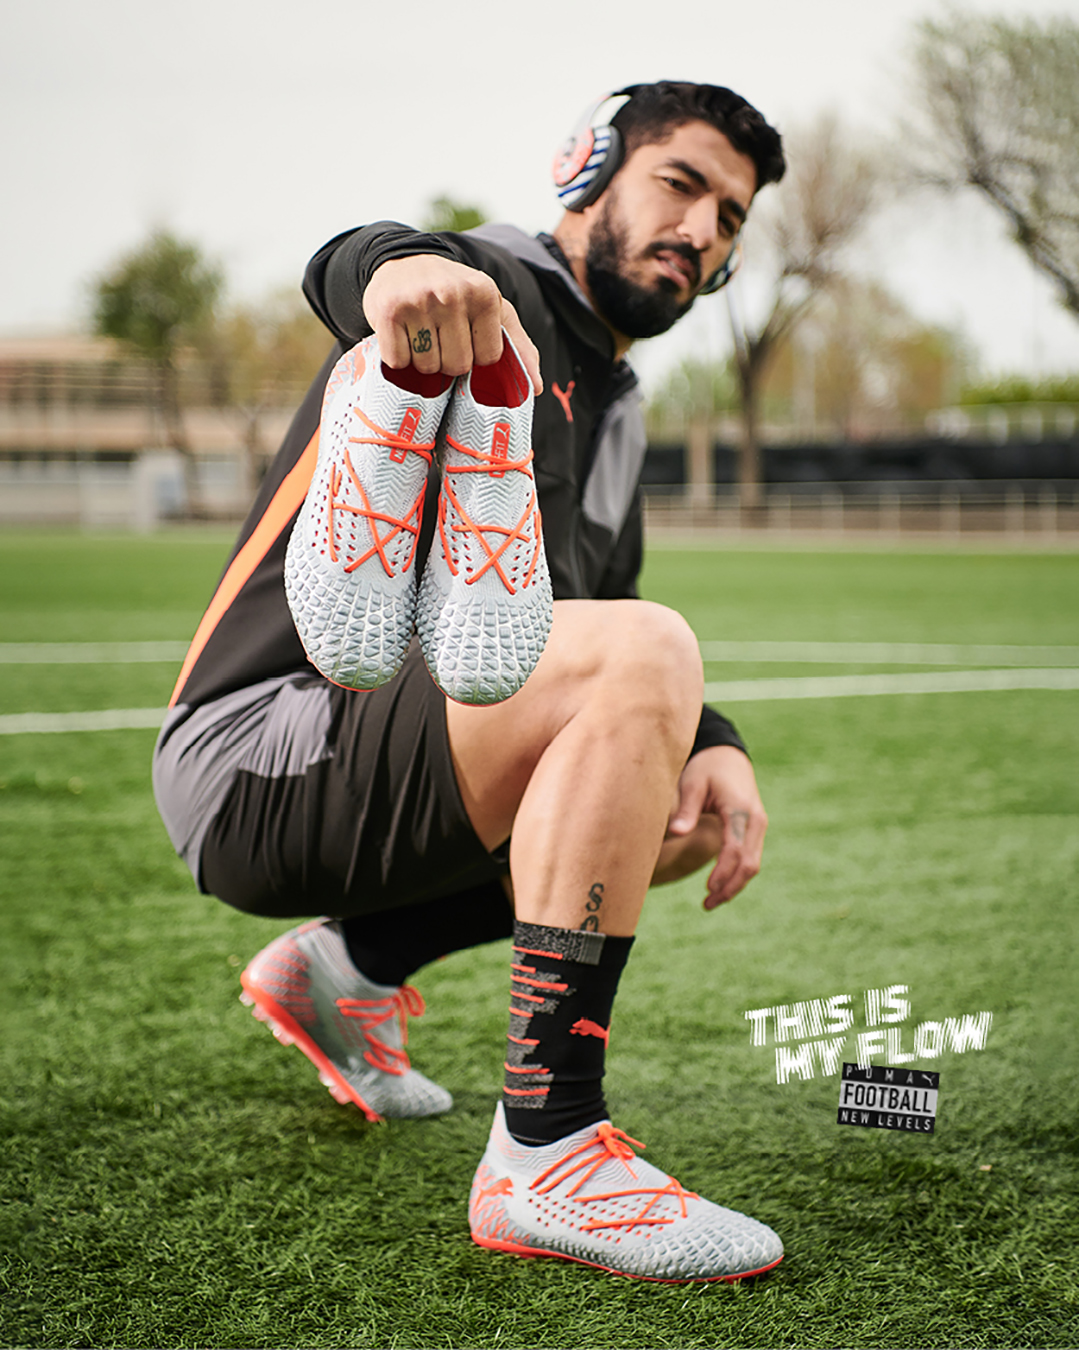 PUMA ANTHEM PACK FOOTBALL BOOTS HELP PLAYERS FIND THEIR FLOW ...